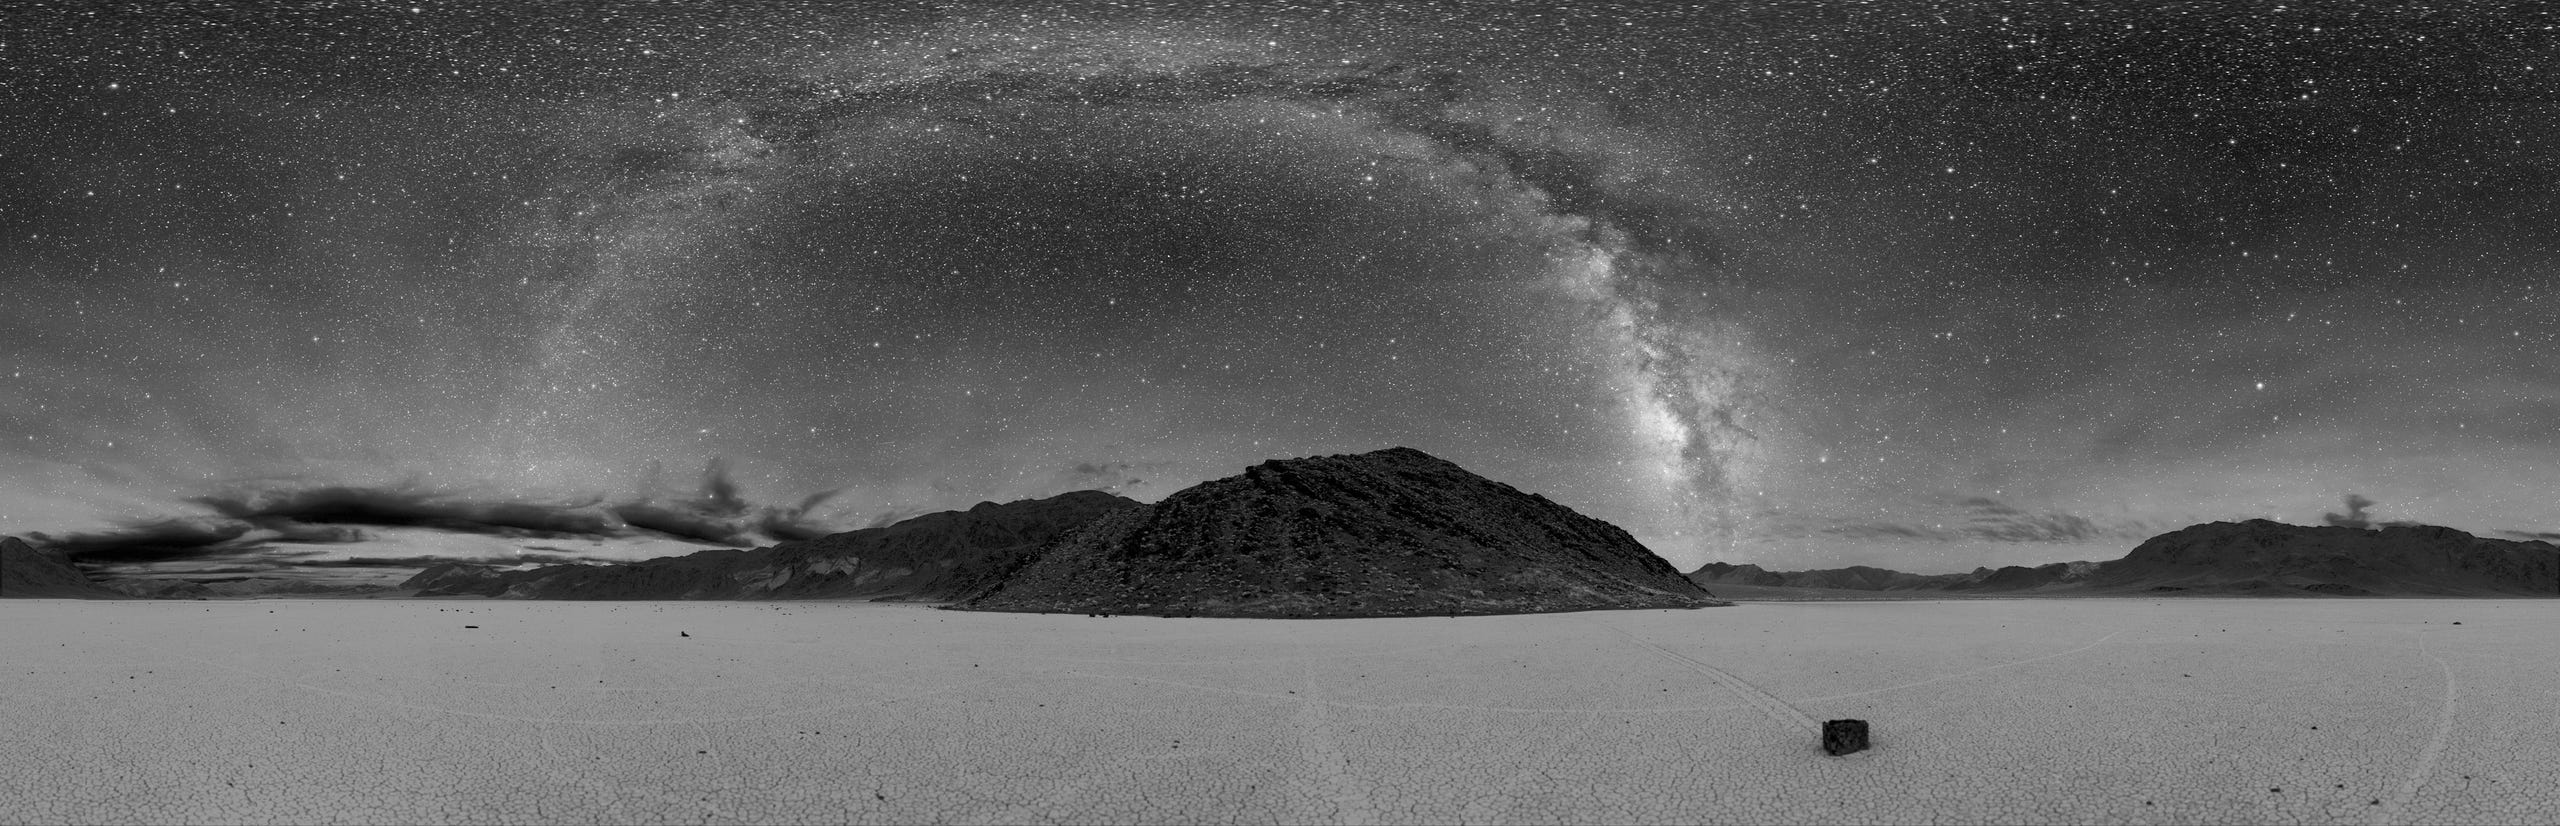 <strong>Death Valley, California:</strong> The lowest point in North America, California's Death Valley National Park, can offer fantastic night-time views.